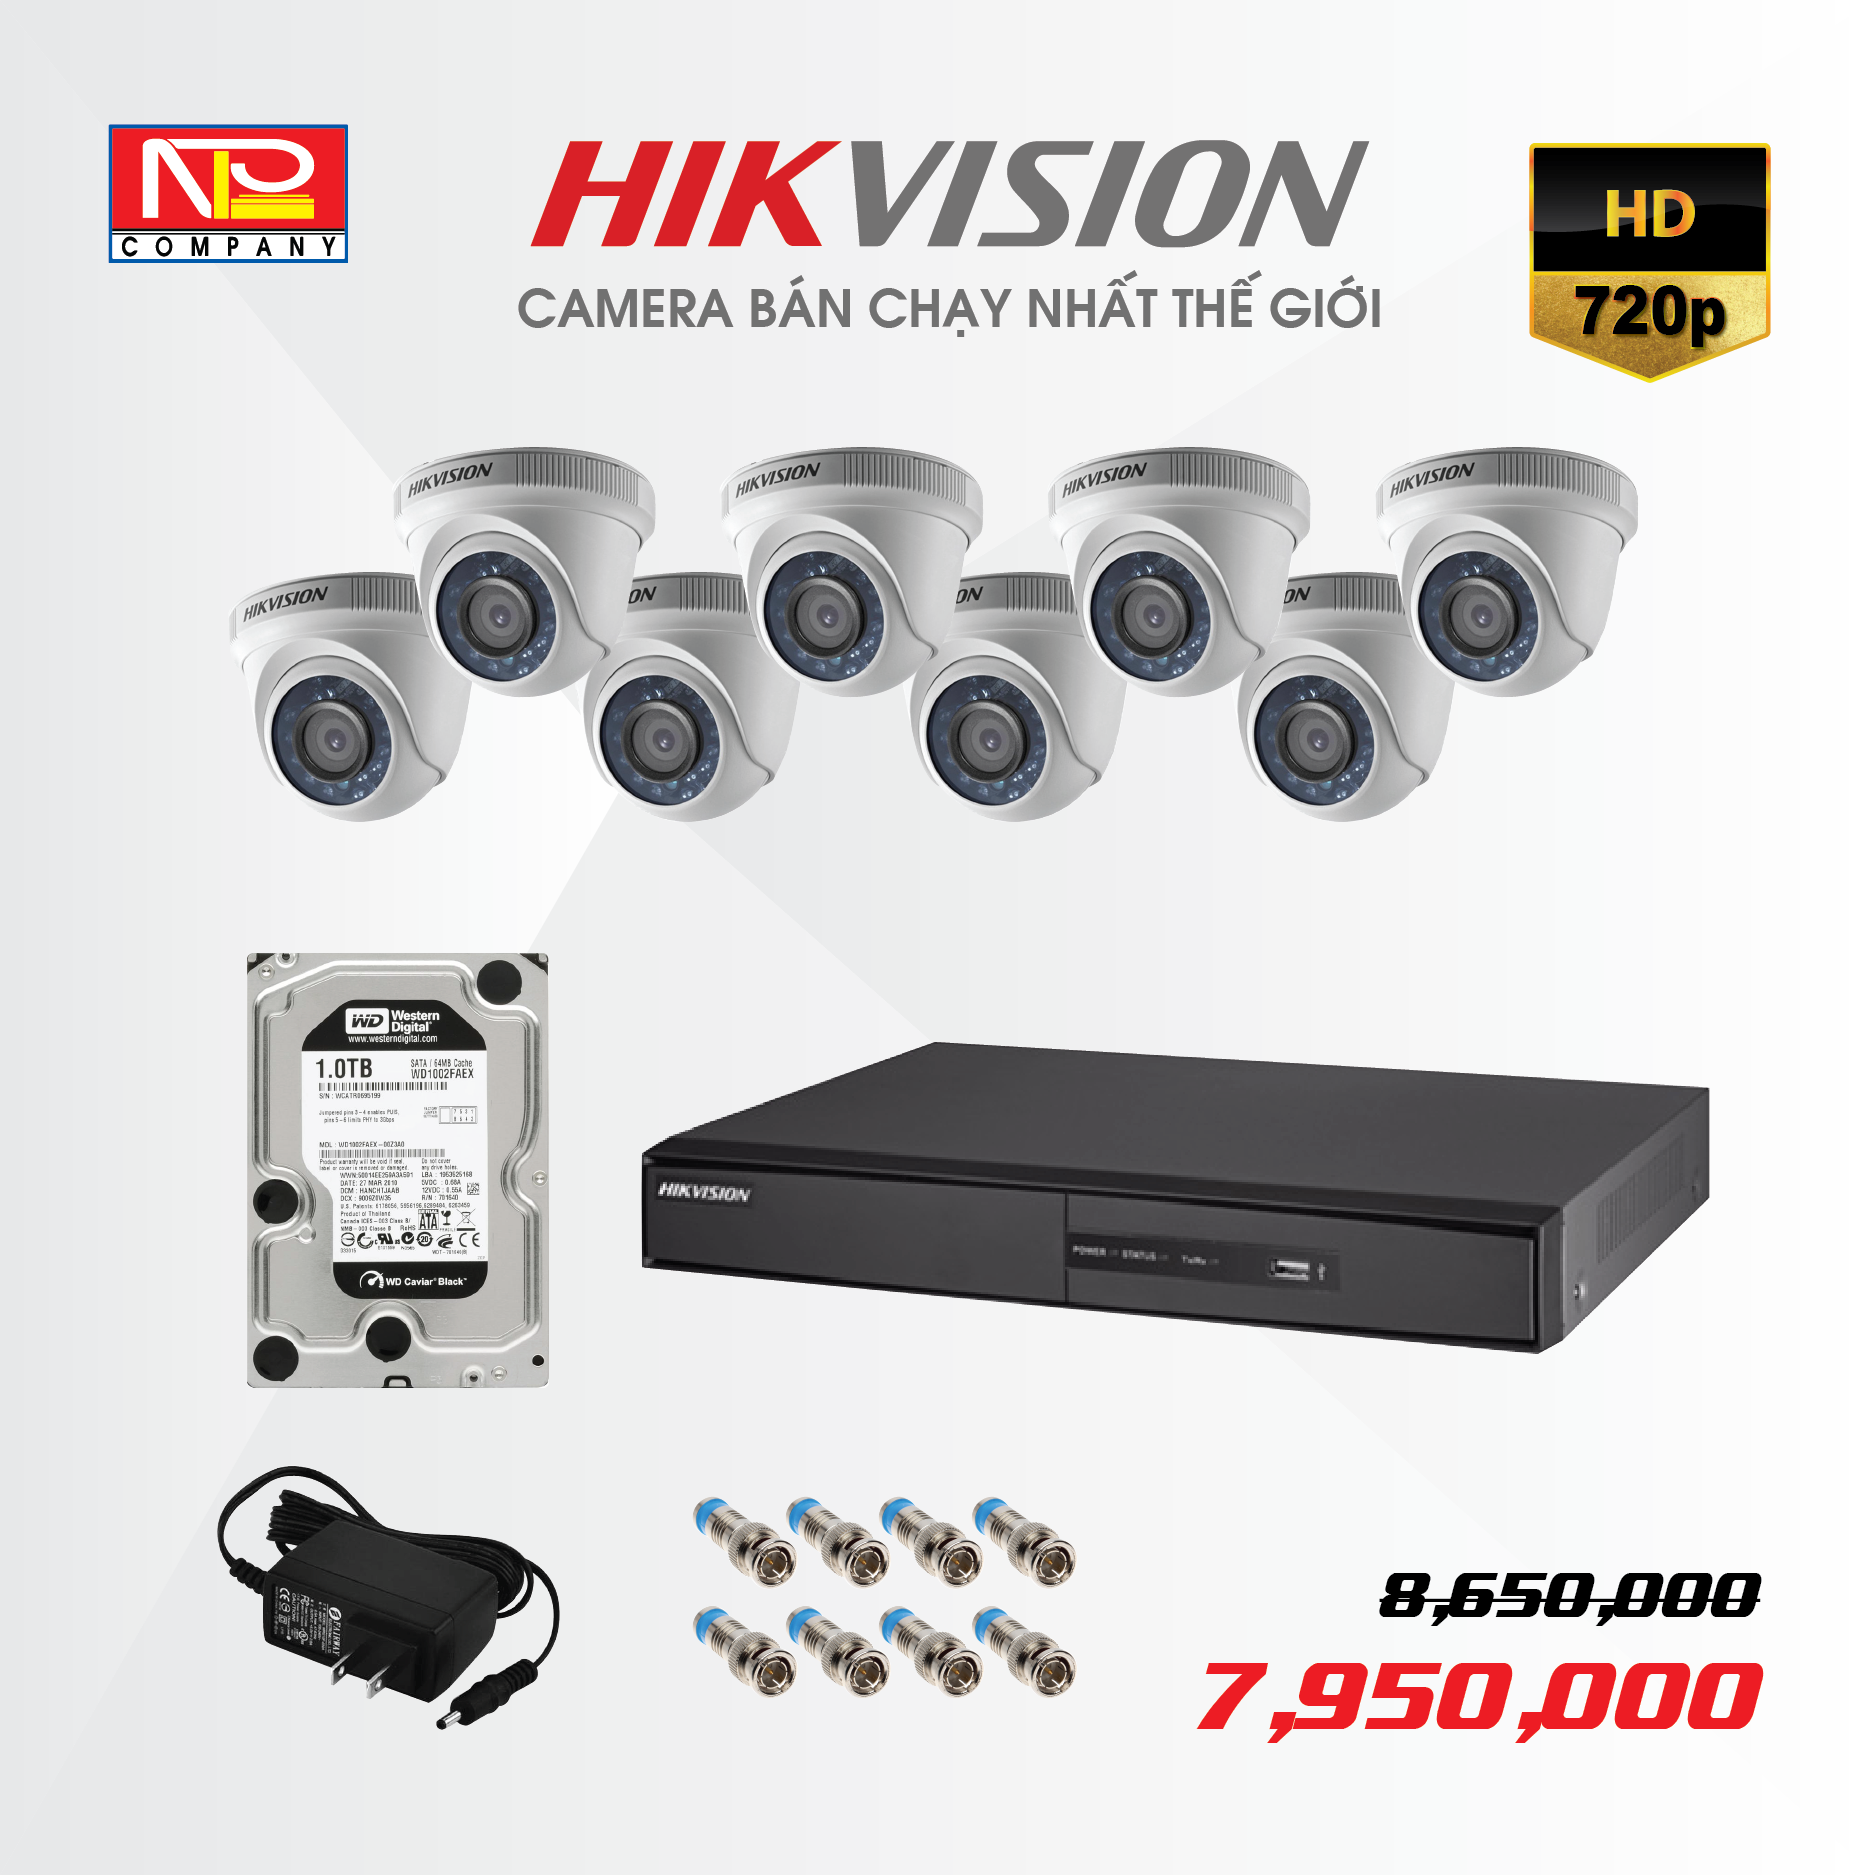 Bộ kit 8 camera analog Hikvision HD720P